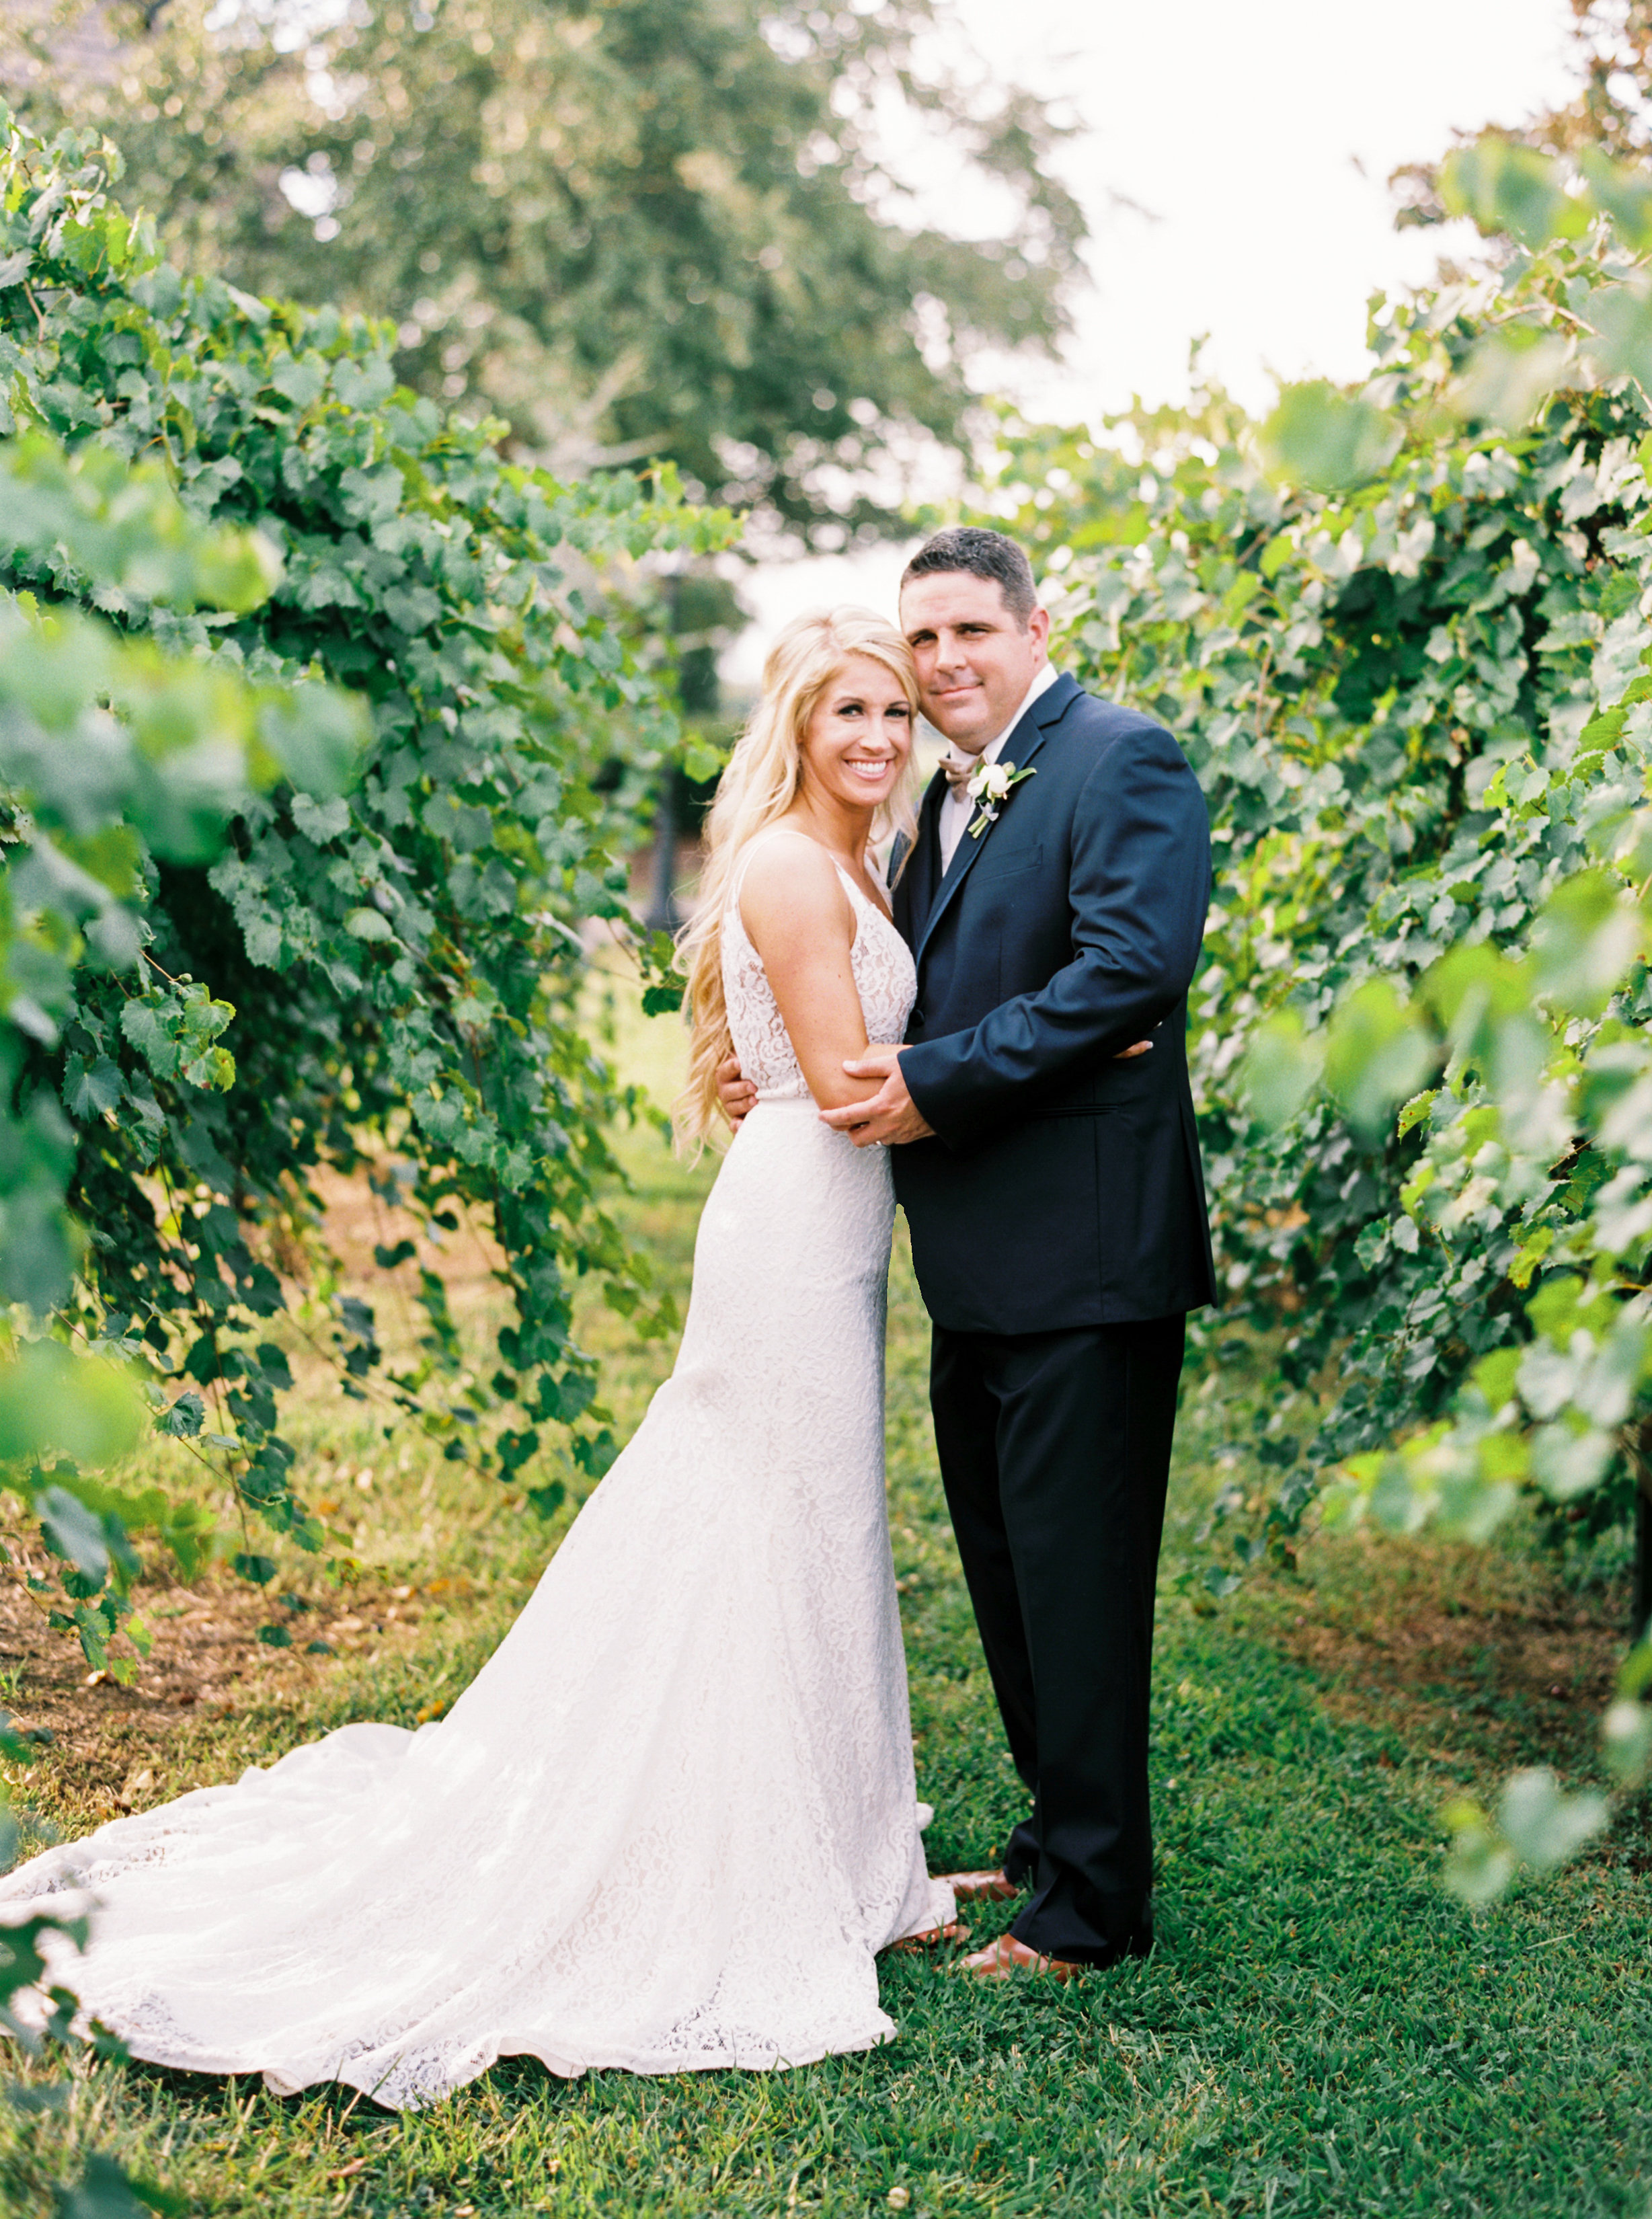 Champagne Manor - Charlotte NC Wedding - Perry Vaile Photography-316.jpg